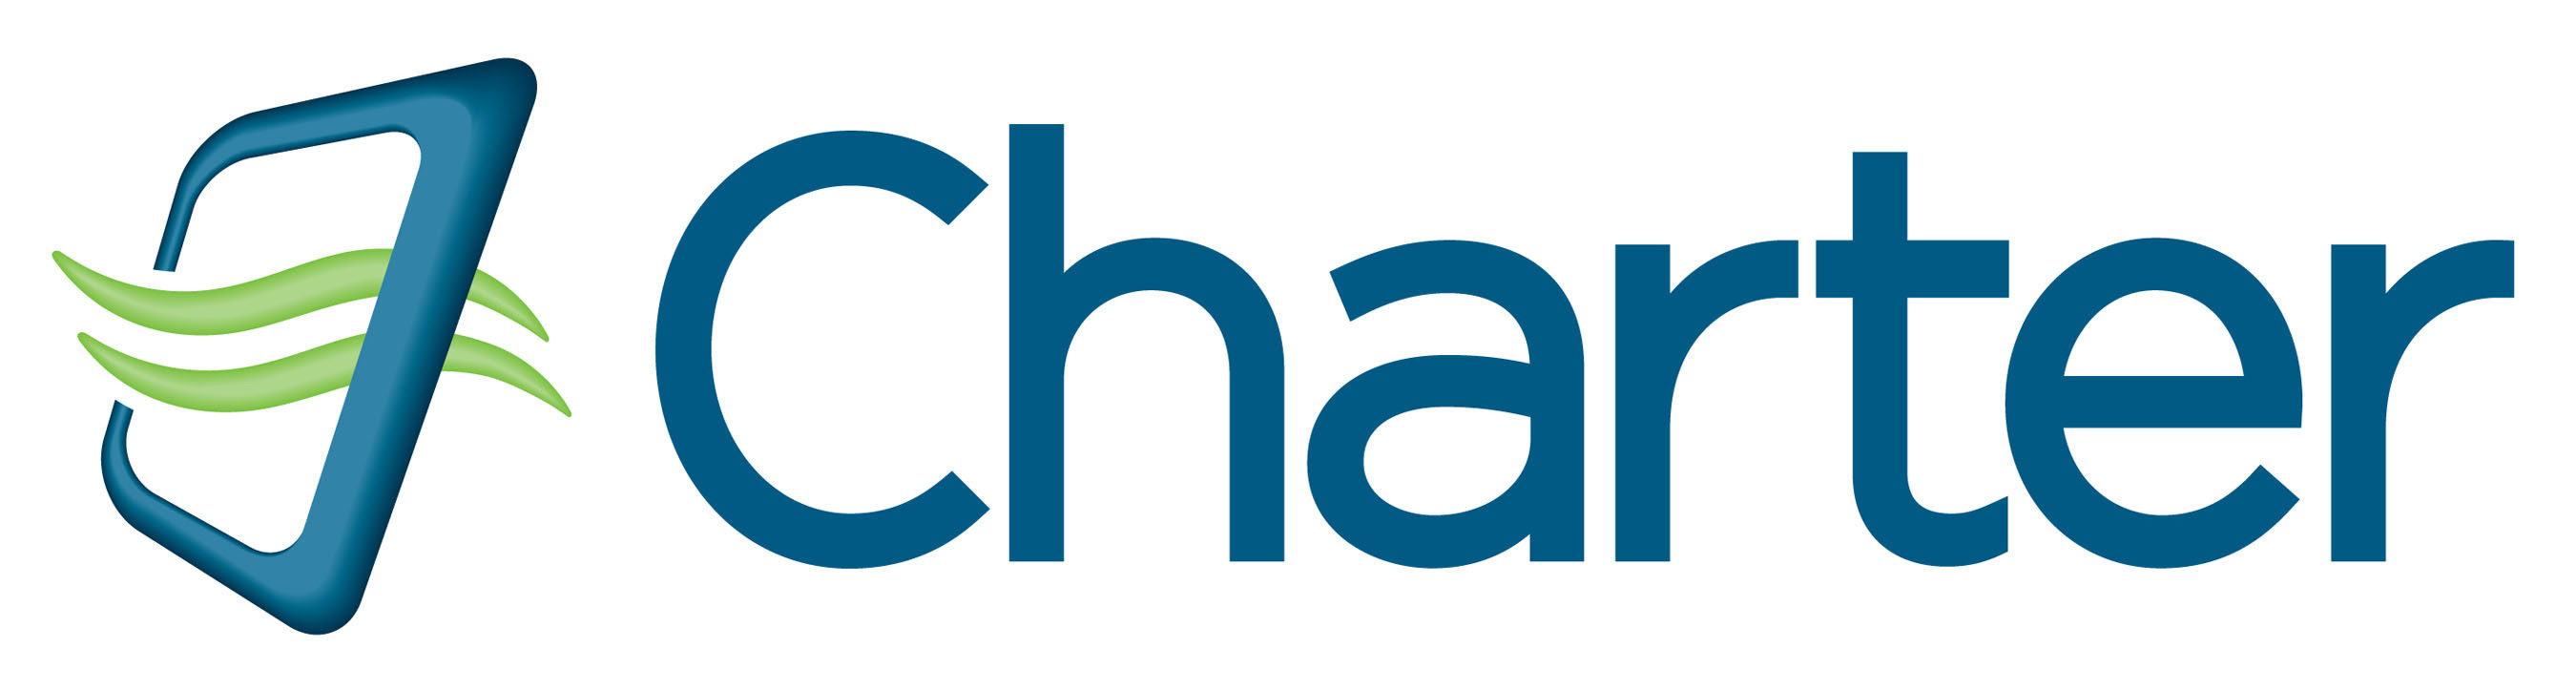 Charter TV expanding HD channels in Missouri & Southern Illinois markets